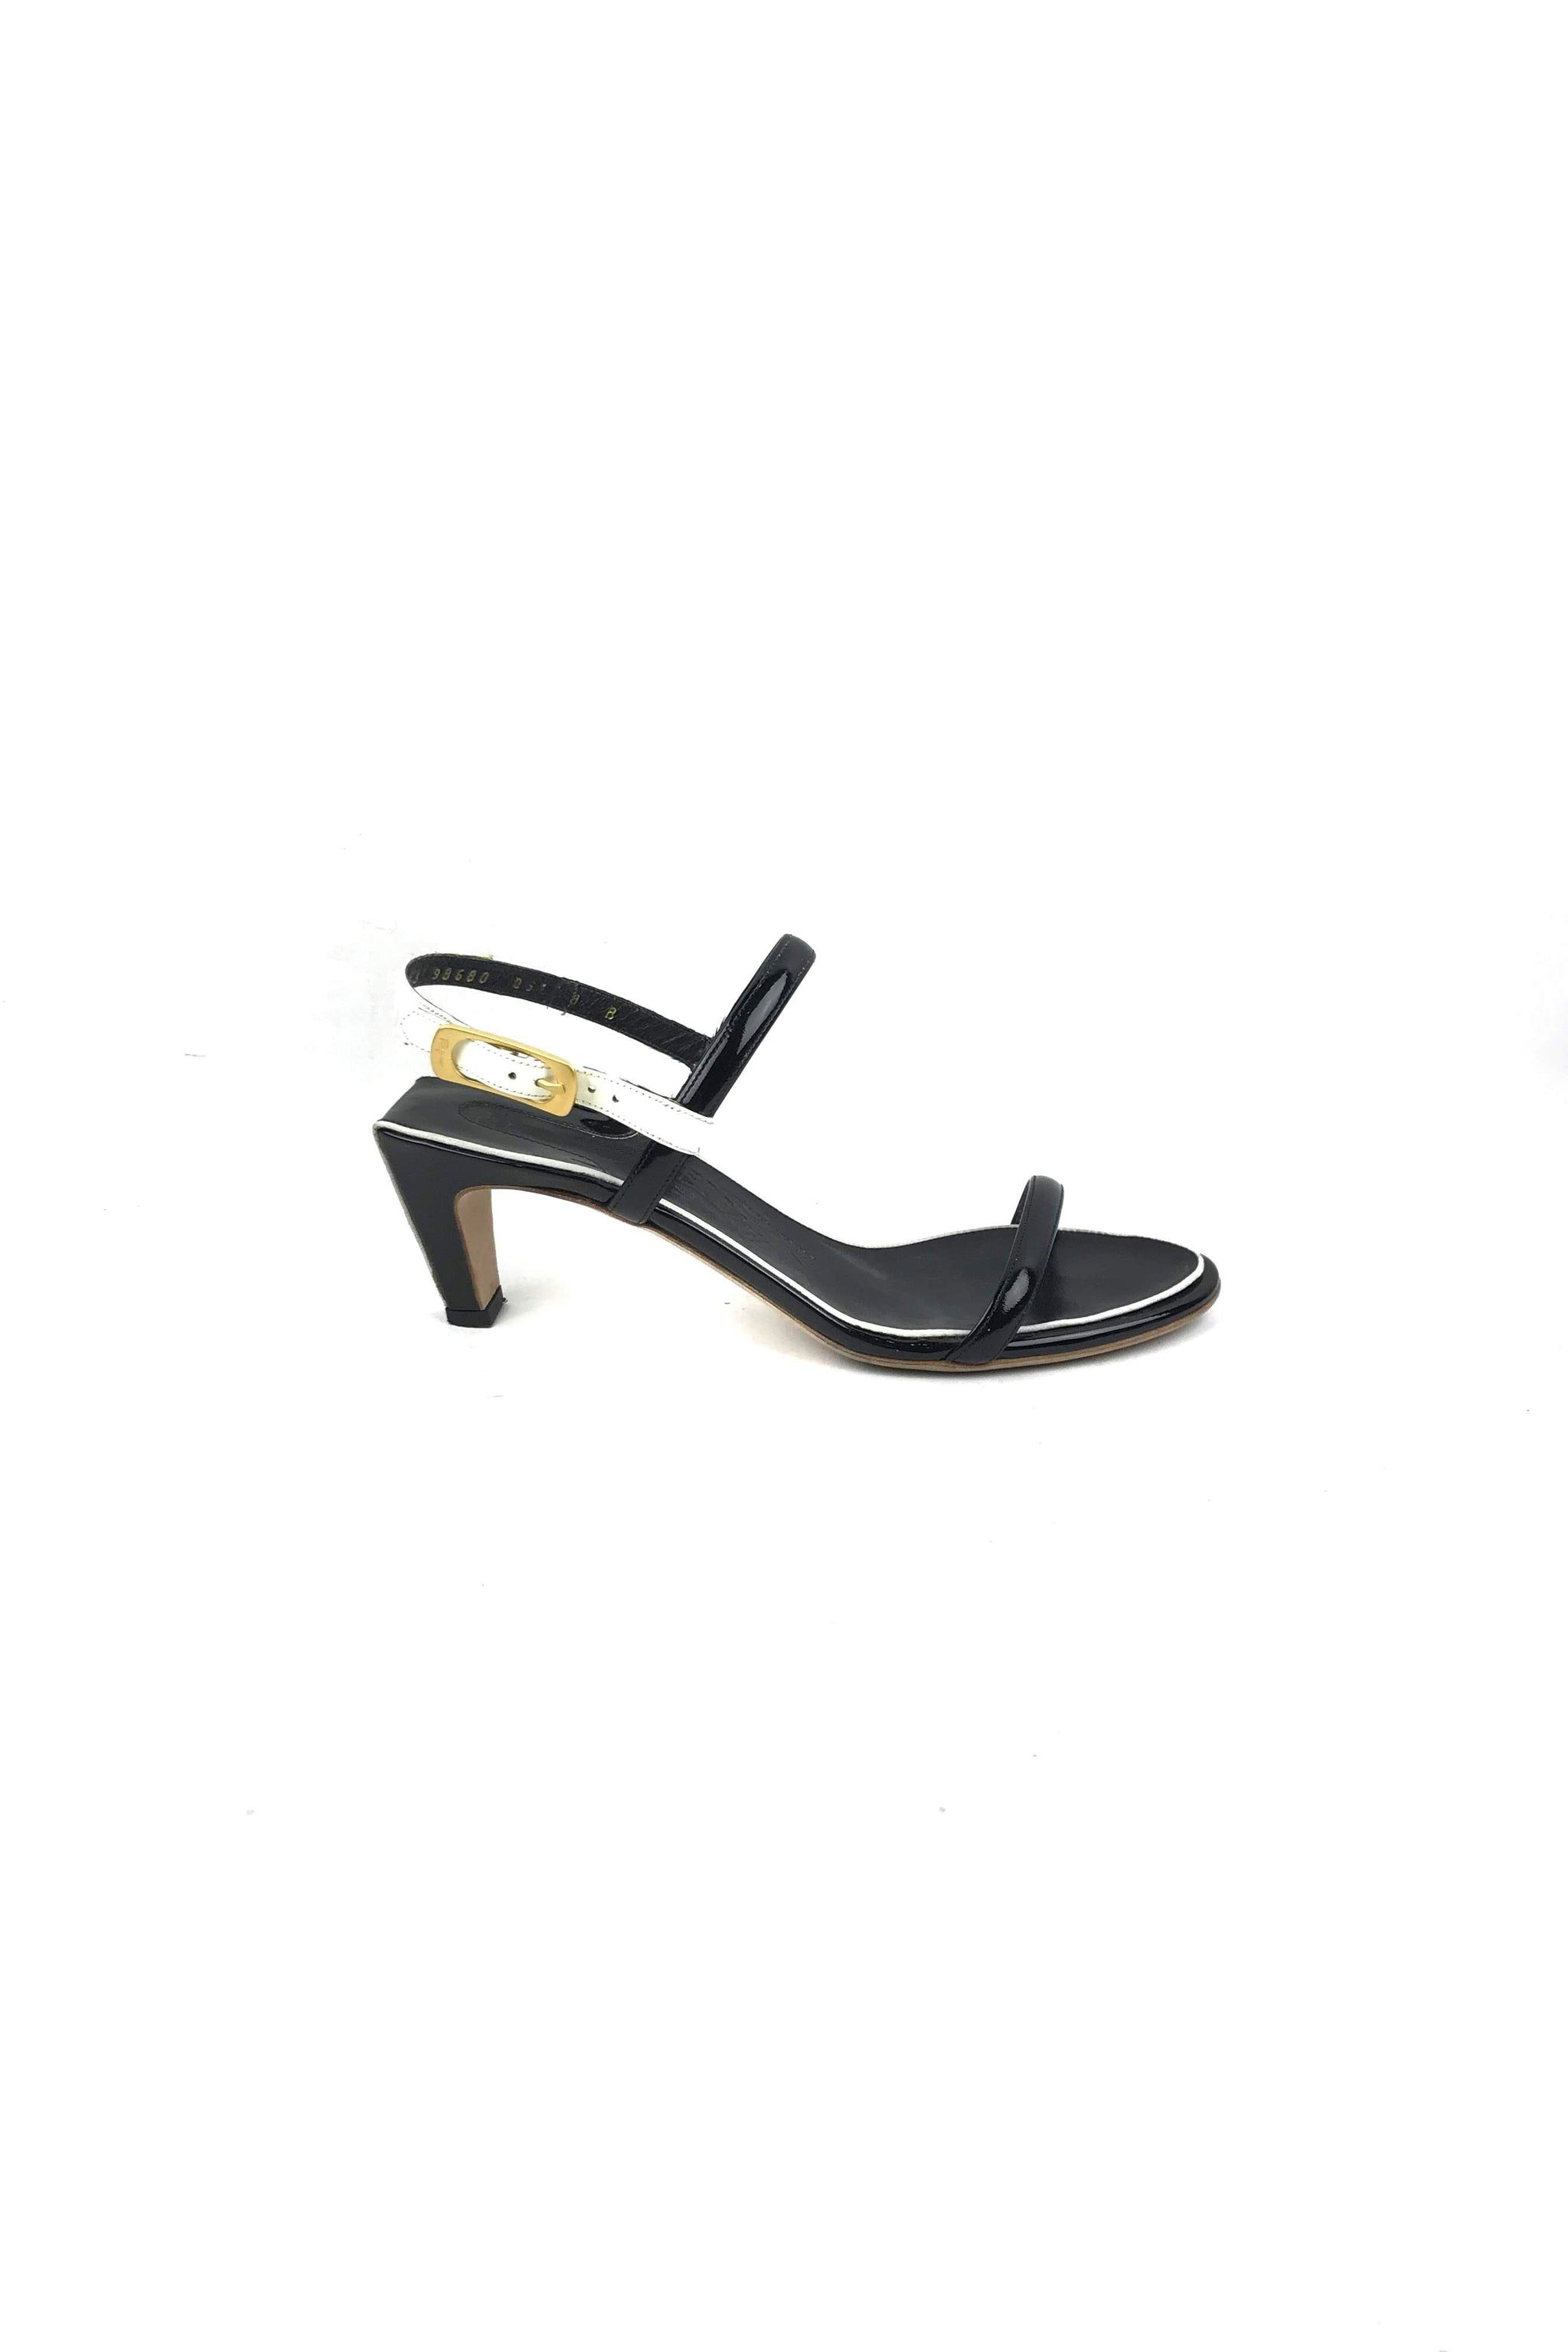 cdd0d416ea8 Black White Patent Leather Suamy Low Heel Sandals – Haute Classics